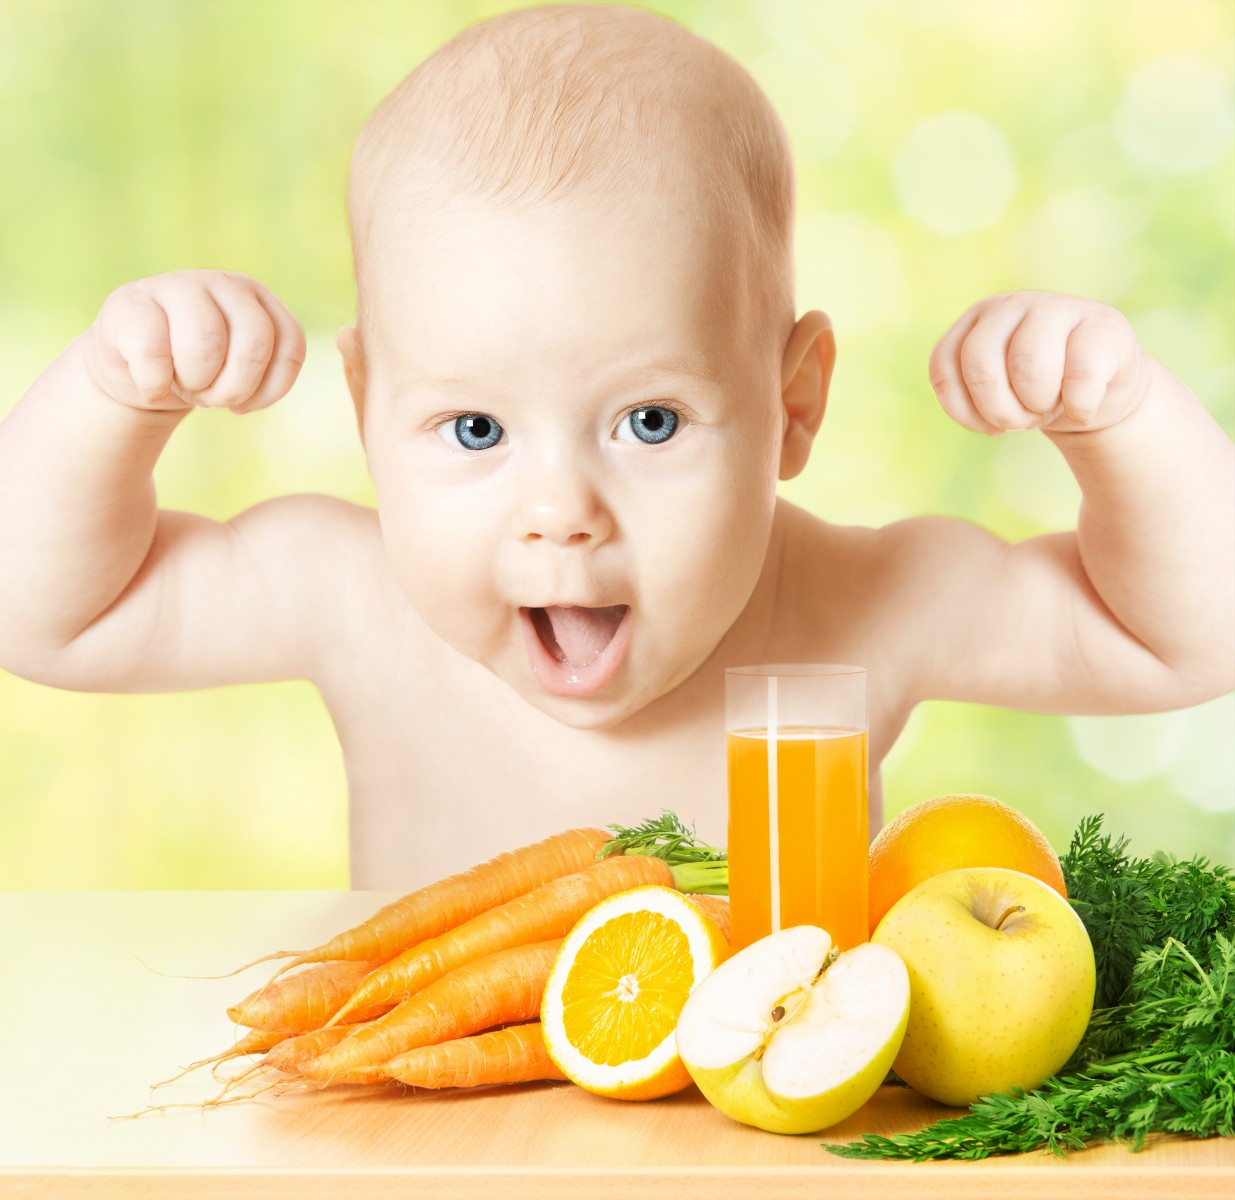 Fresh juice and fruits in hd photos cute babies photos collection - Baby Fresh Fruit Meal And Juice Glass